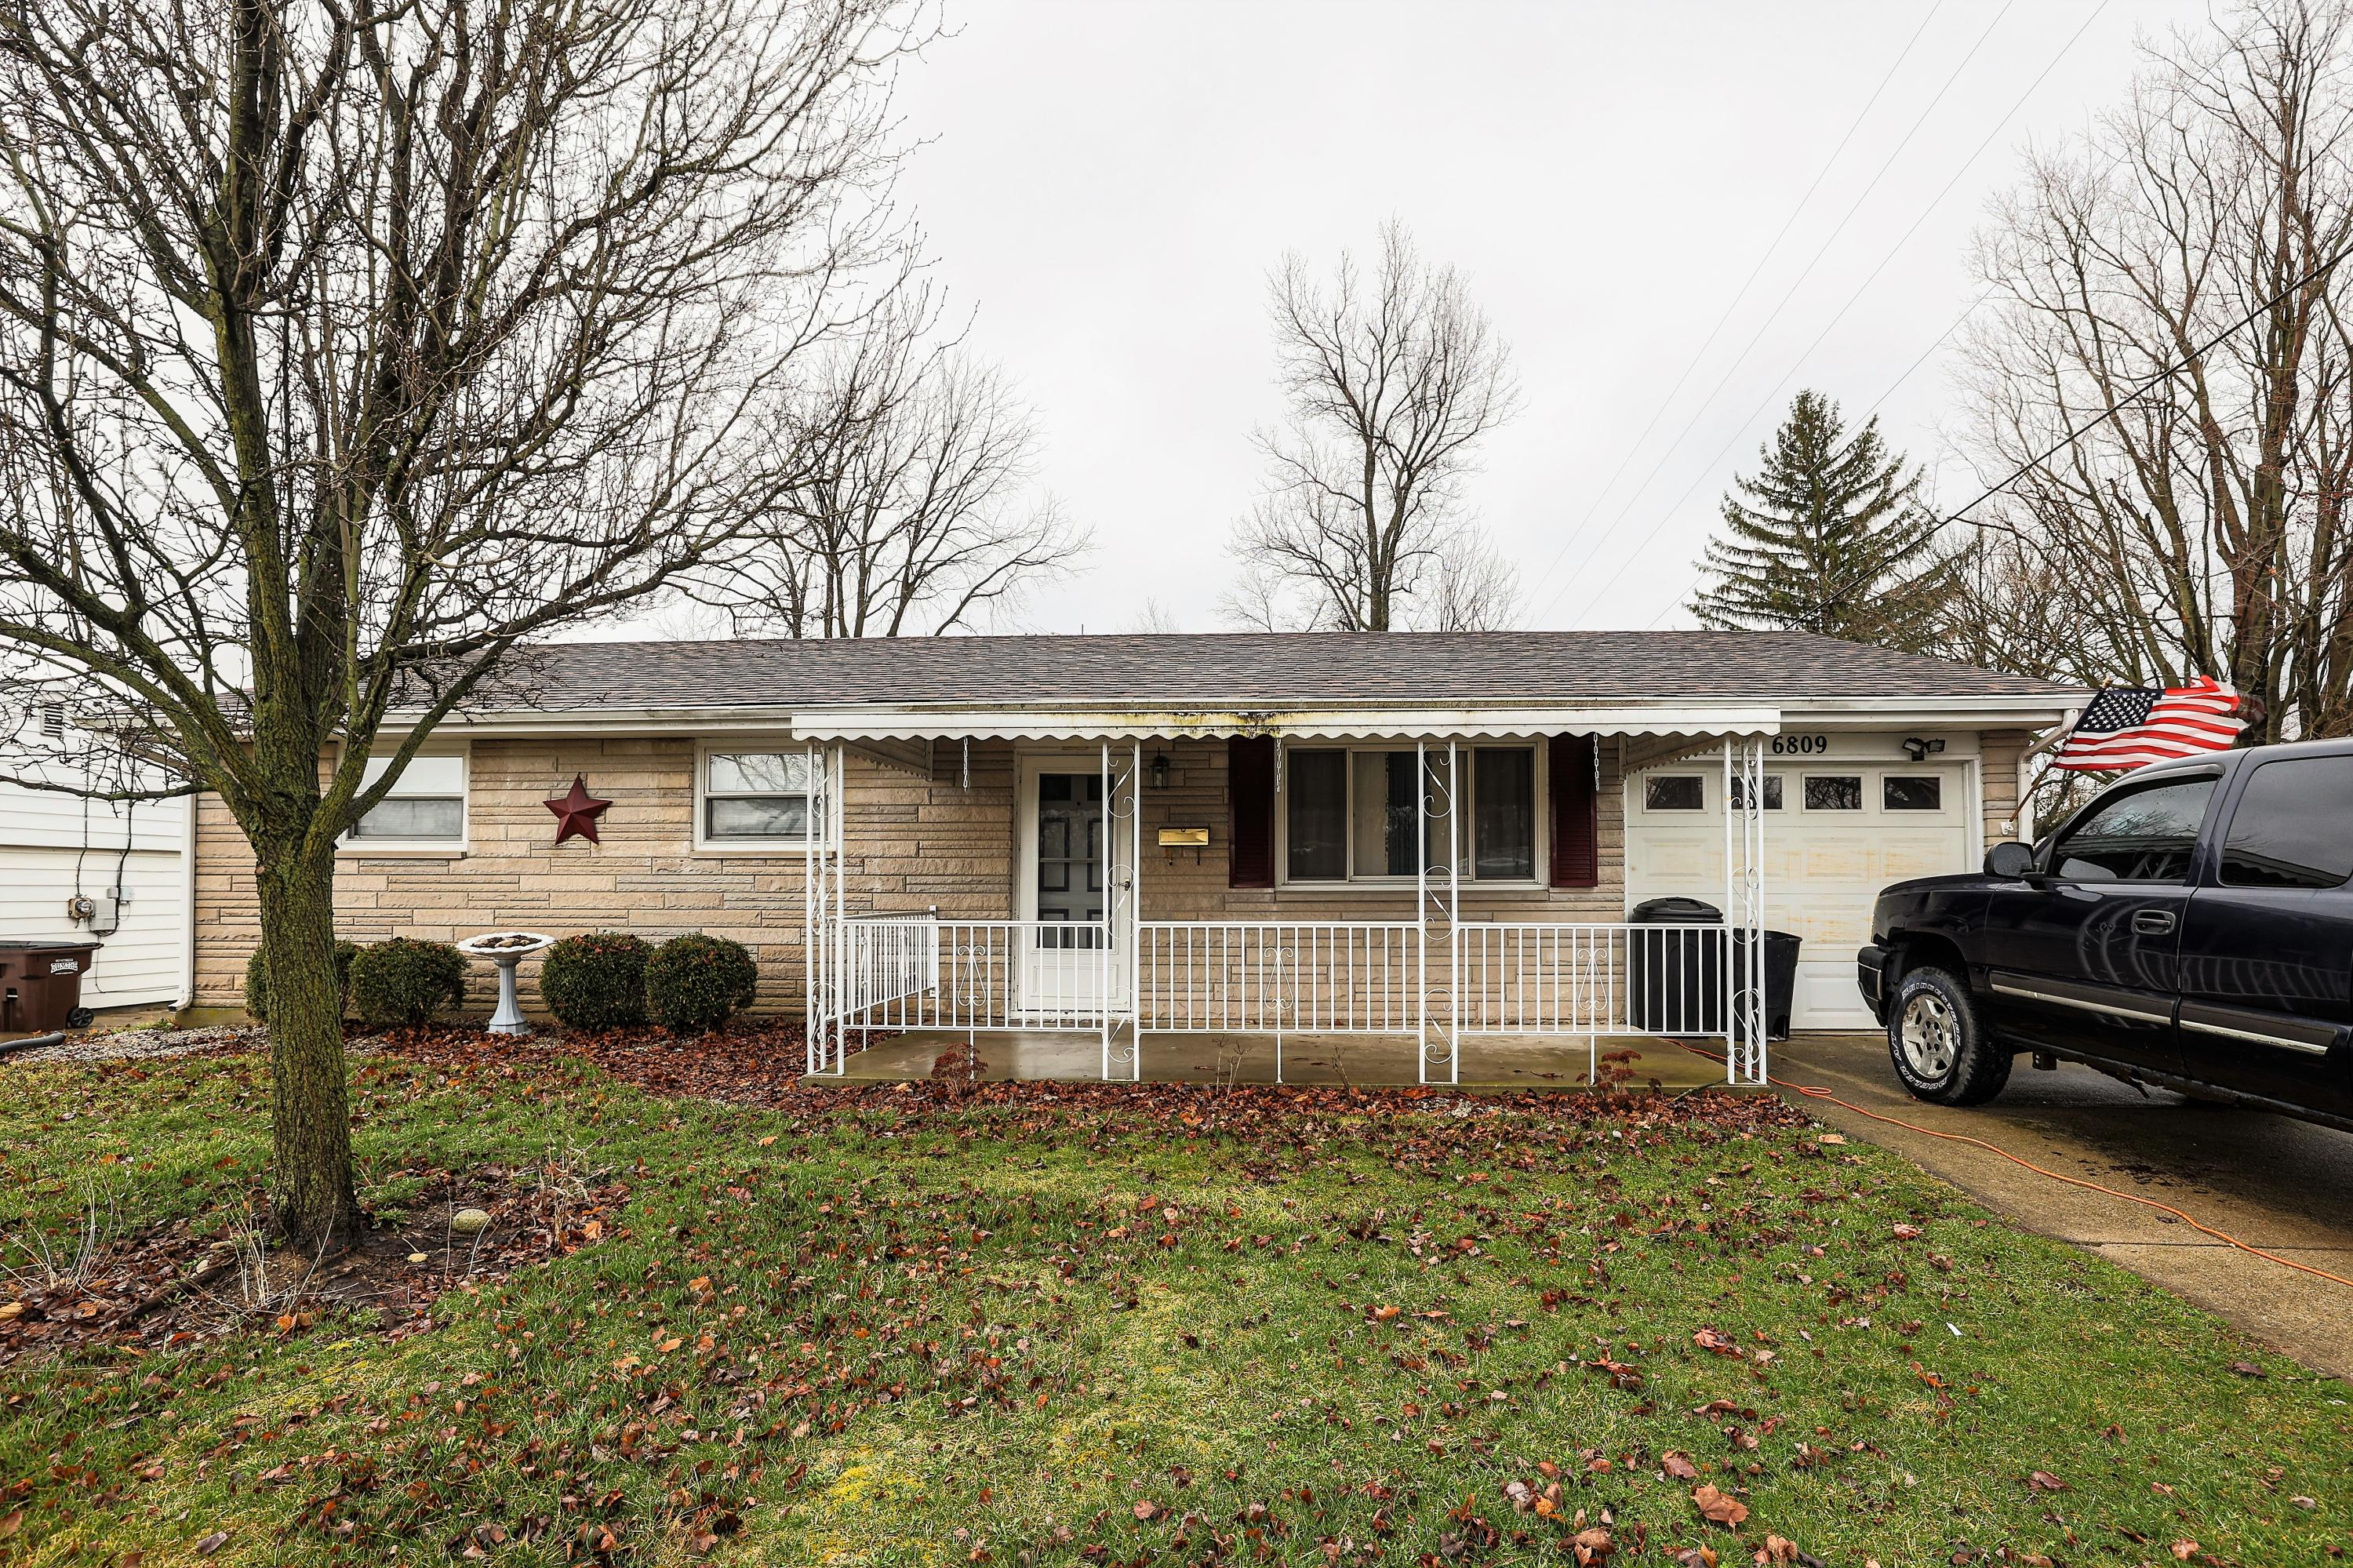 6809 Southern Vista Drive Property Photo - Enon, OH real estate listing